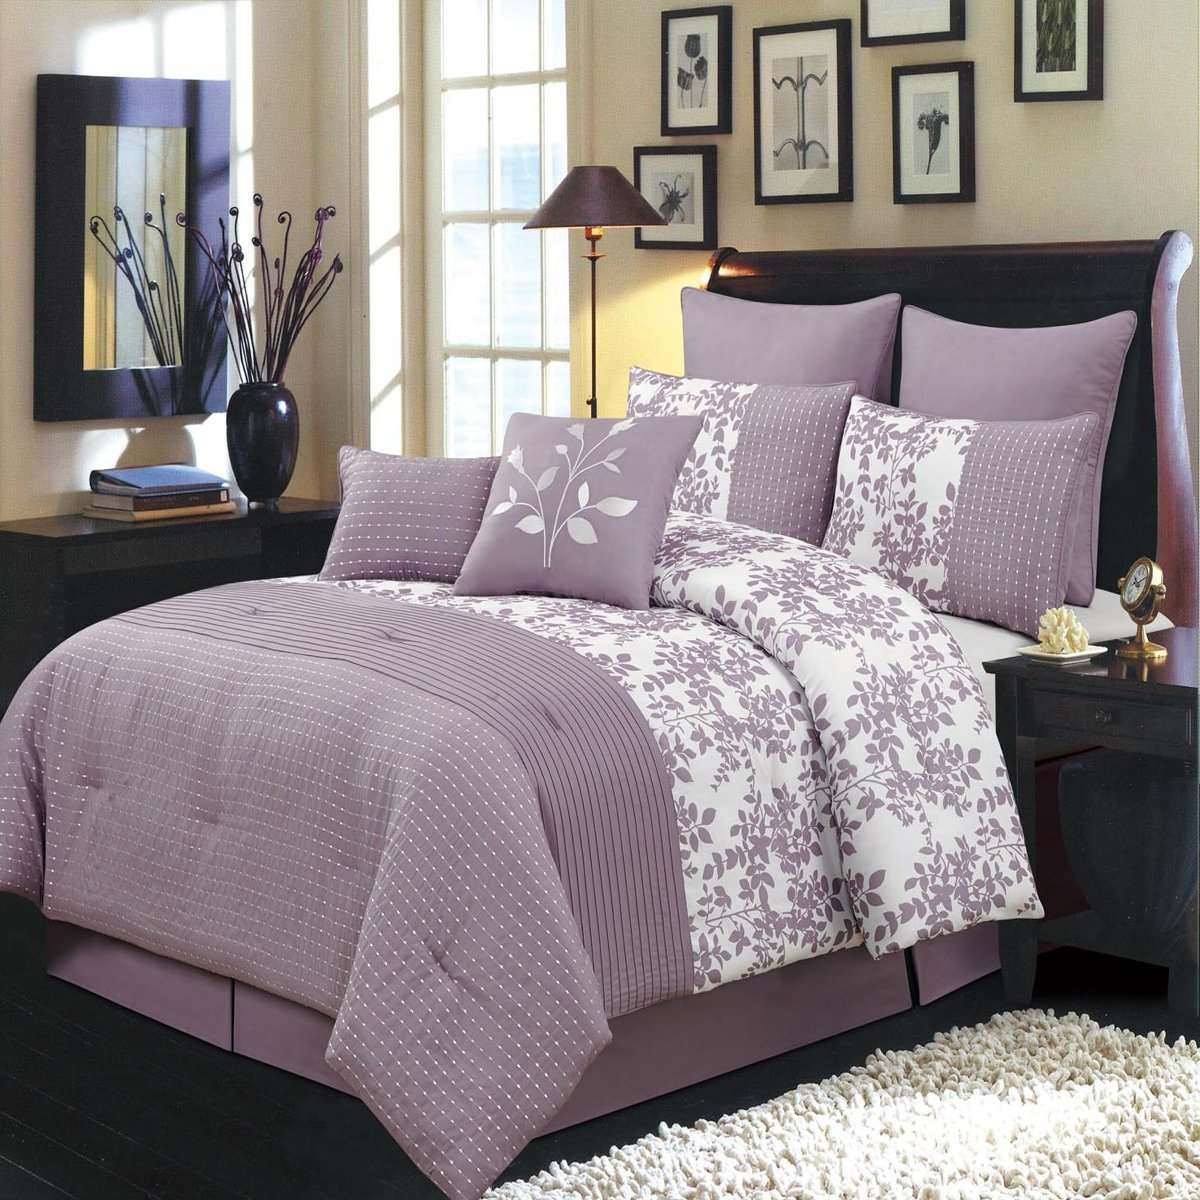 Belk Comforters | Gucci Bedding | Luxury Comforter Sets